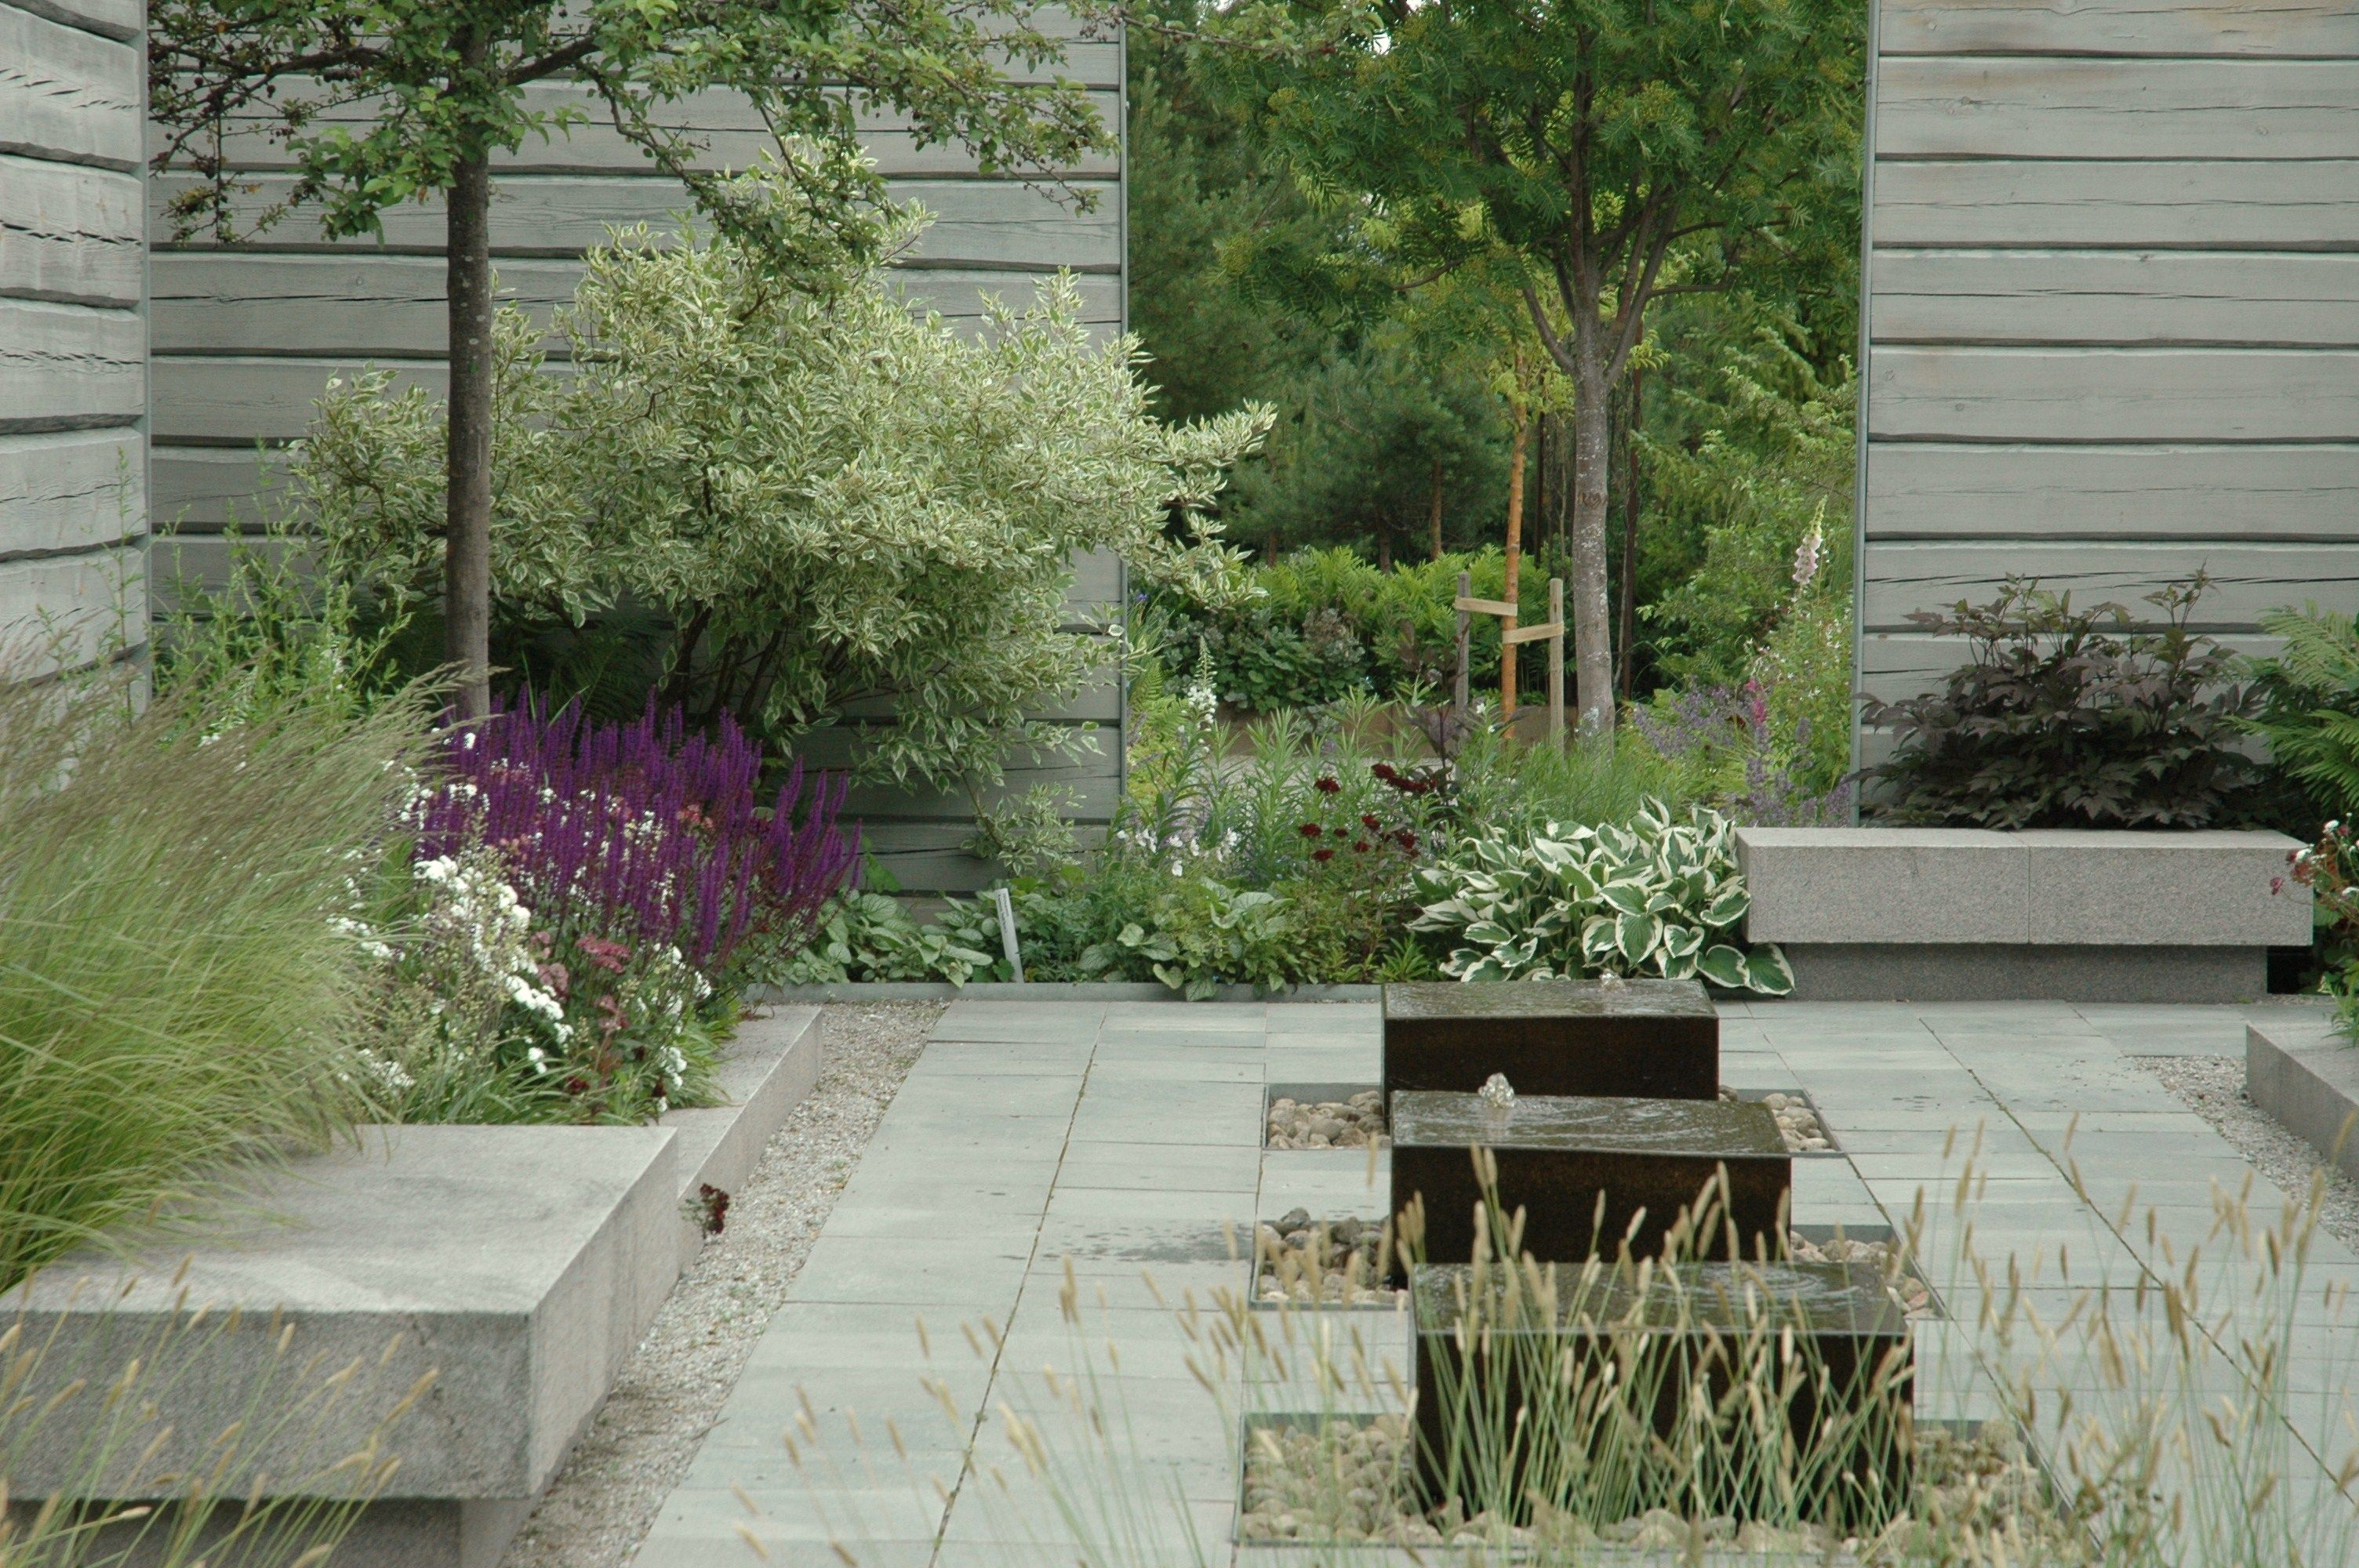 Hard soft simon irvine pinned to garden design by for Soft landscaping ideas